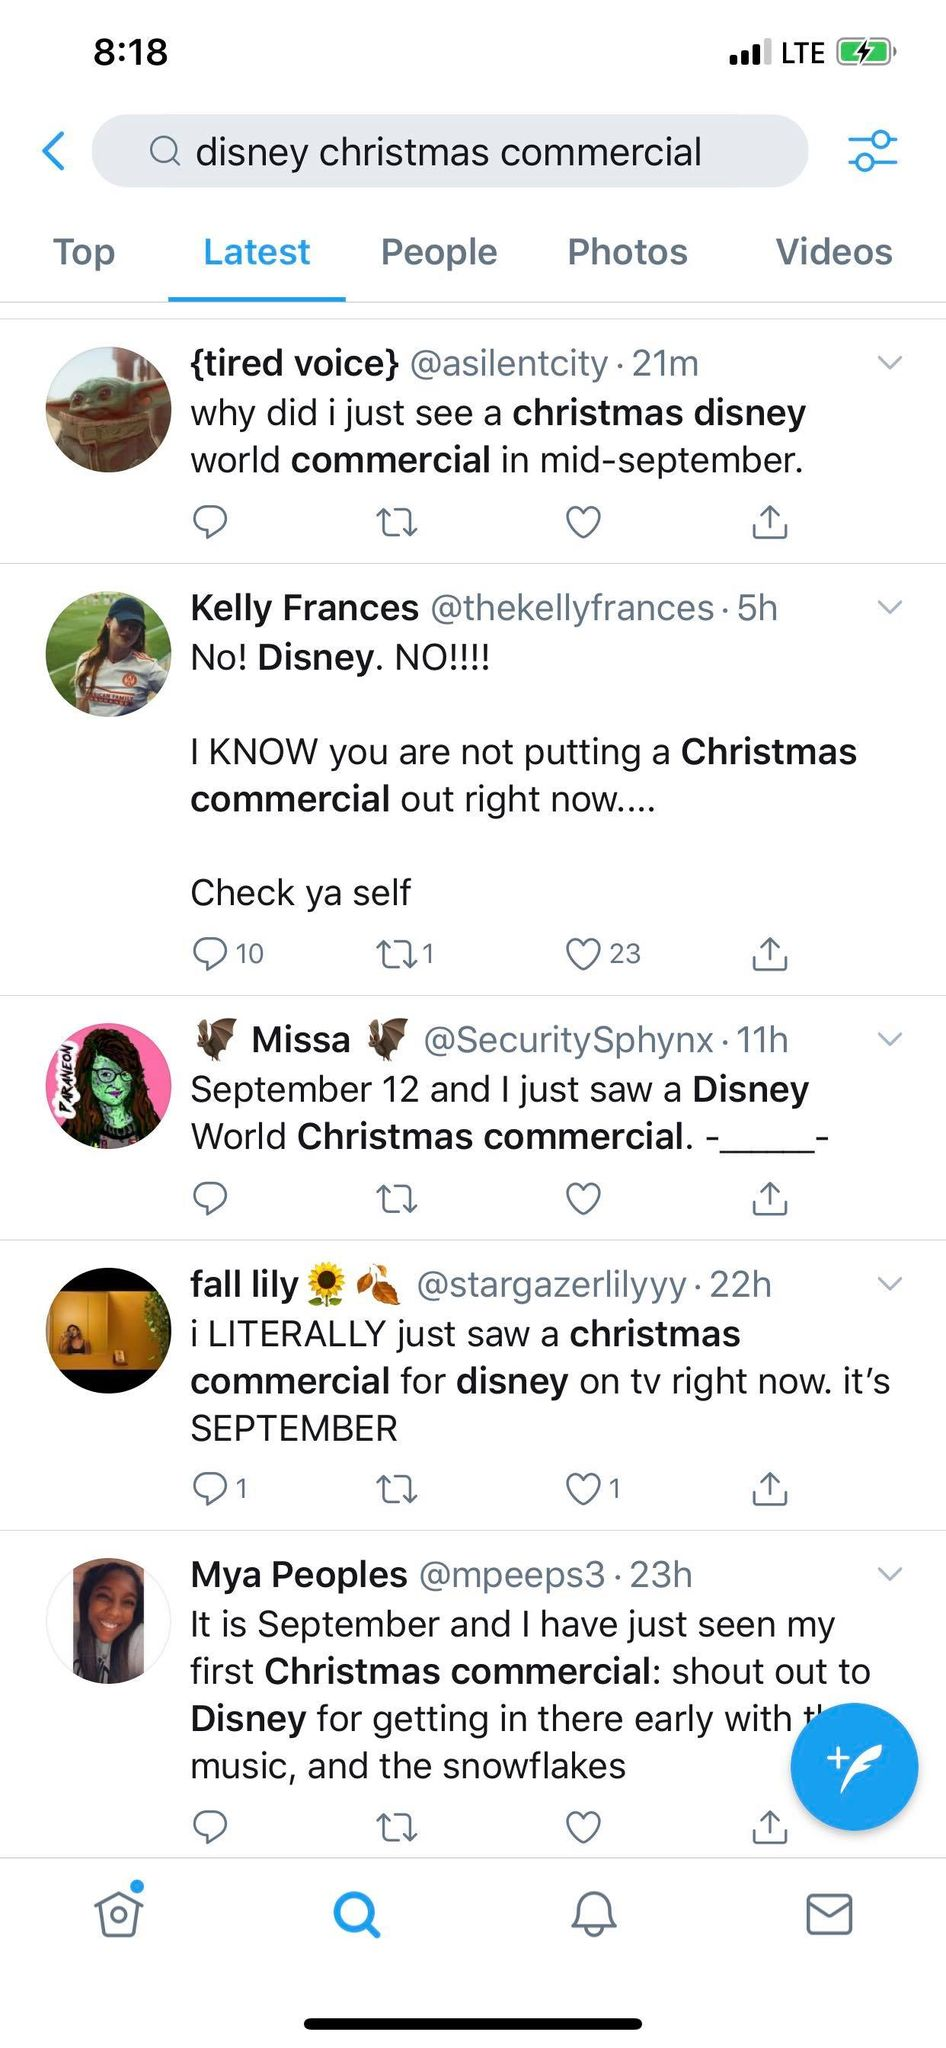 Earliest Christmas Commercial In 2020 VIDEO: Disney Airs New 2020 Christmas Commercial!   MickeyBlog.com